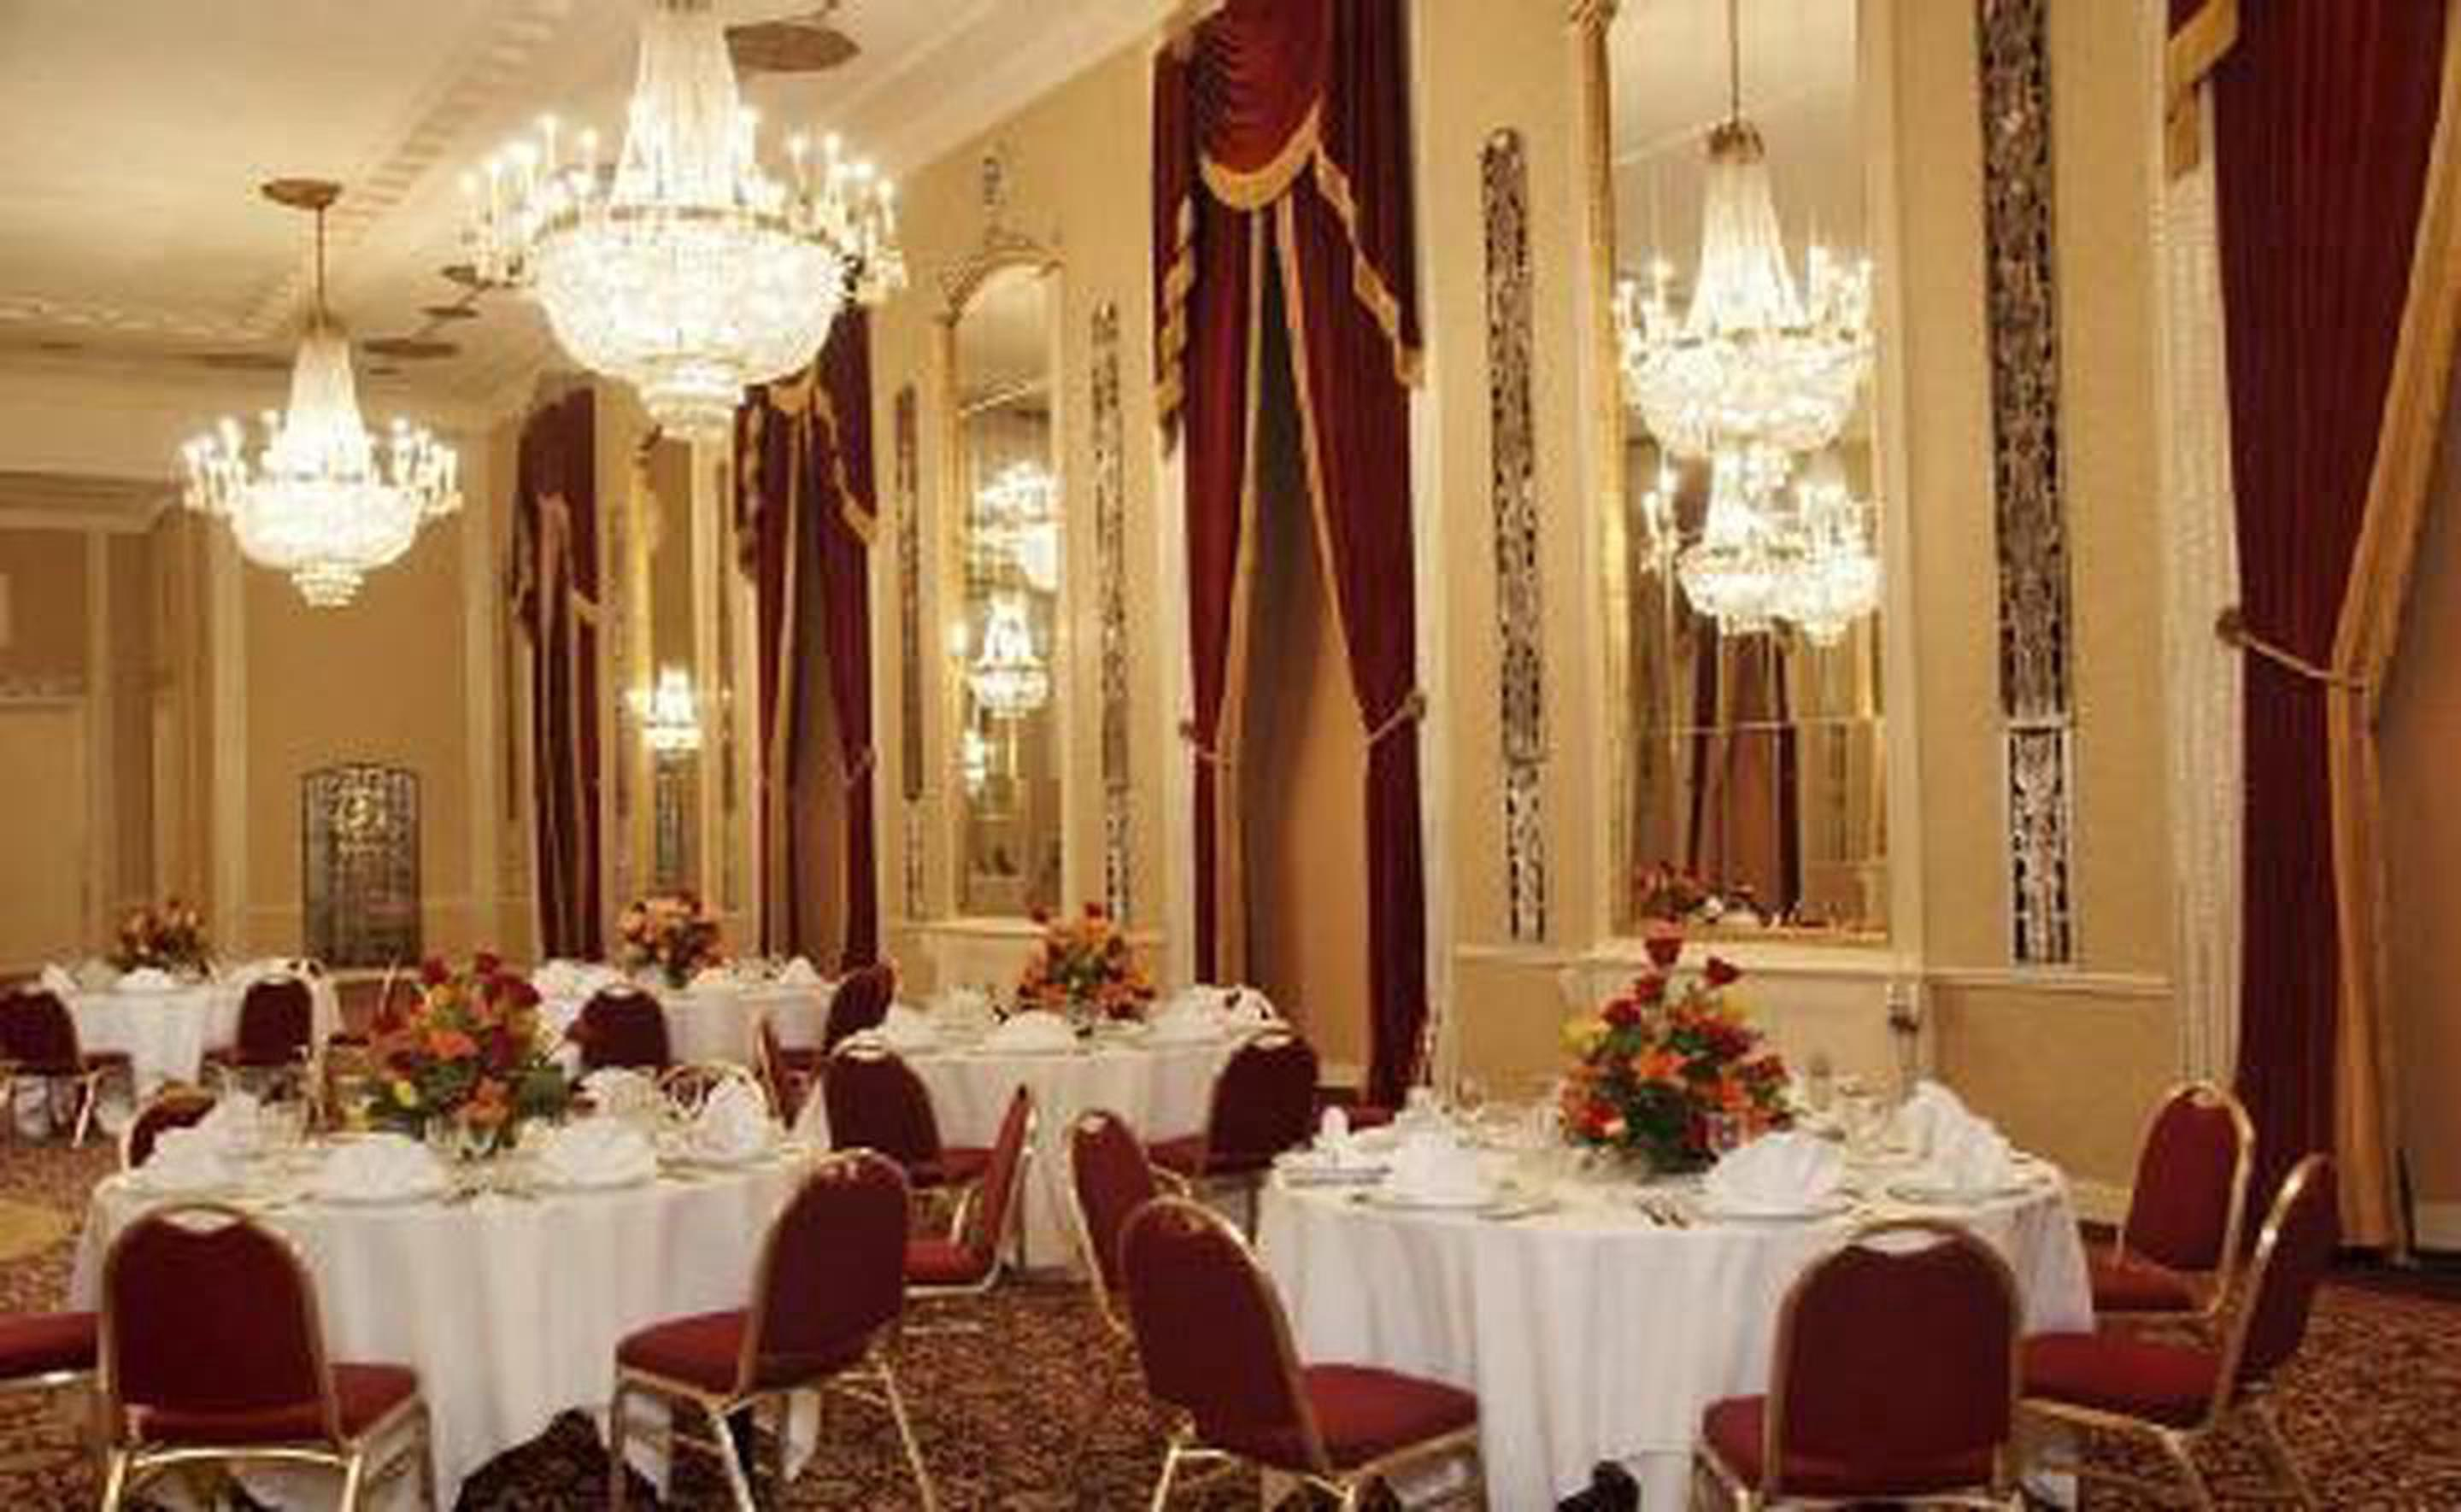 Crystal BallroomThe exquisite Crystal Ballroom dates back to World War II and highlights an Art Deco authenticity, including high ceilings and ornate mirrors.